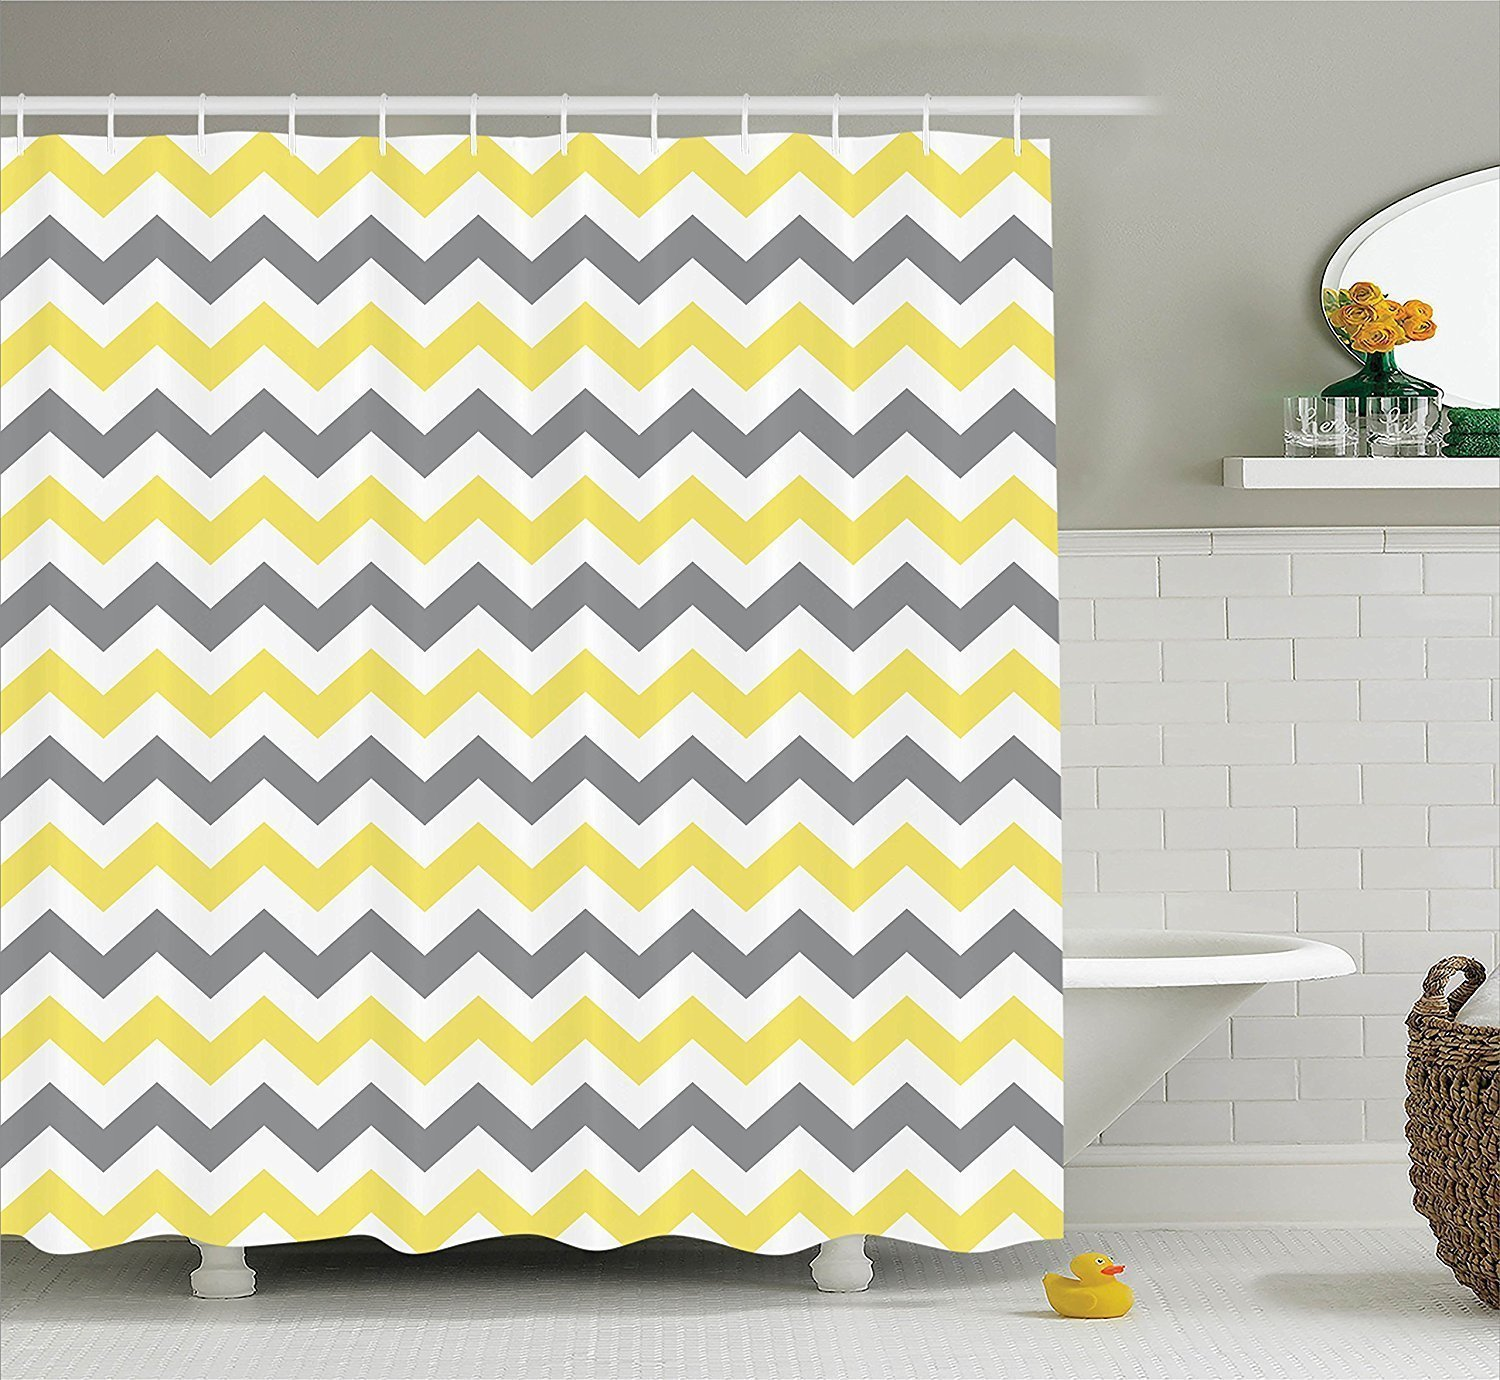 Us 17 34 35 Off Chevron Zigzag Pattern Bathroom Decor Shower Curtain Yellow Grey White Polyester Waterproof Fabric Shower Curtains In Shower